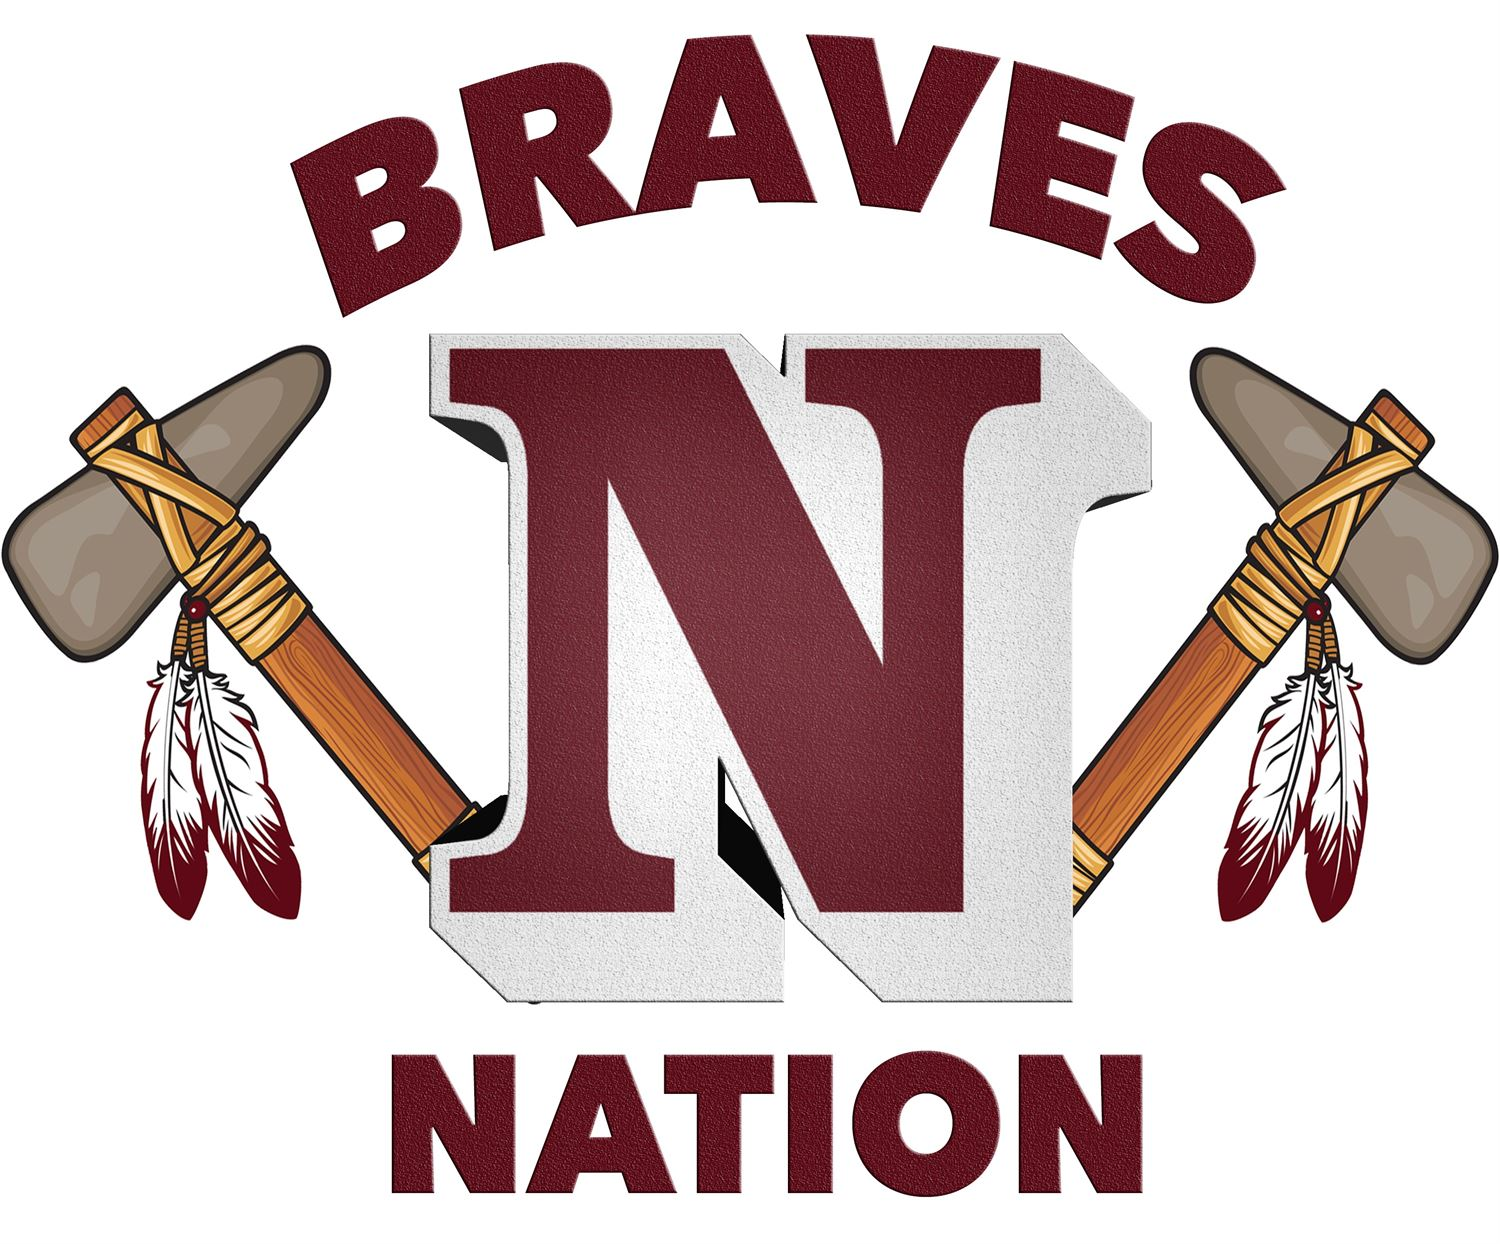 Newton Braves Youth Football League - Newton Braves Varsity (HC Sibblies)